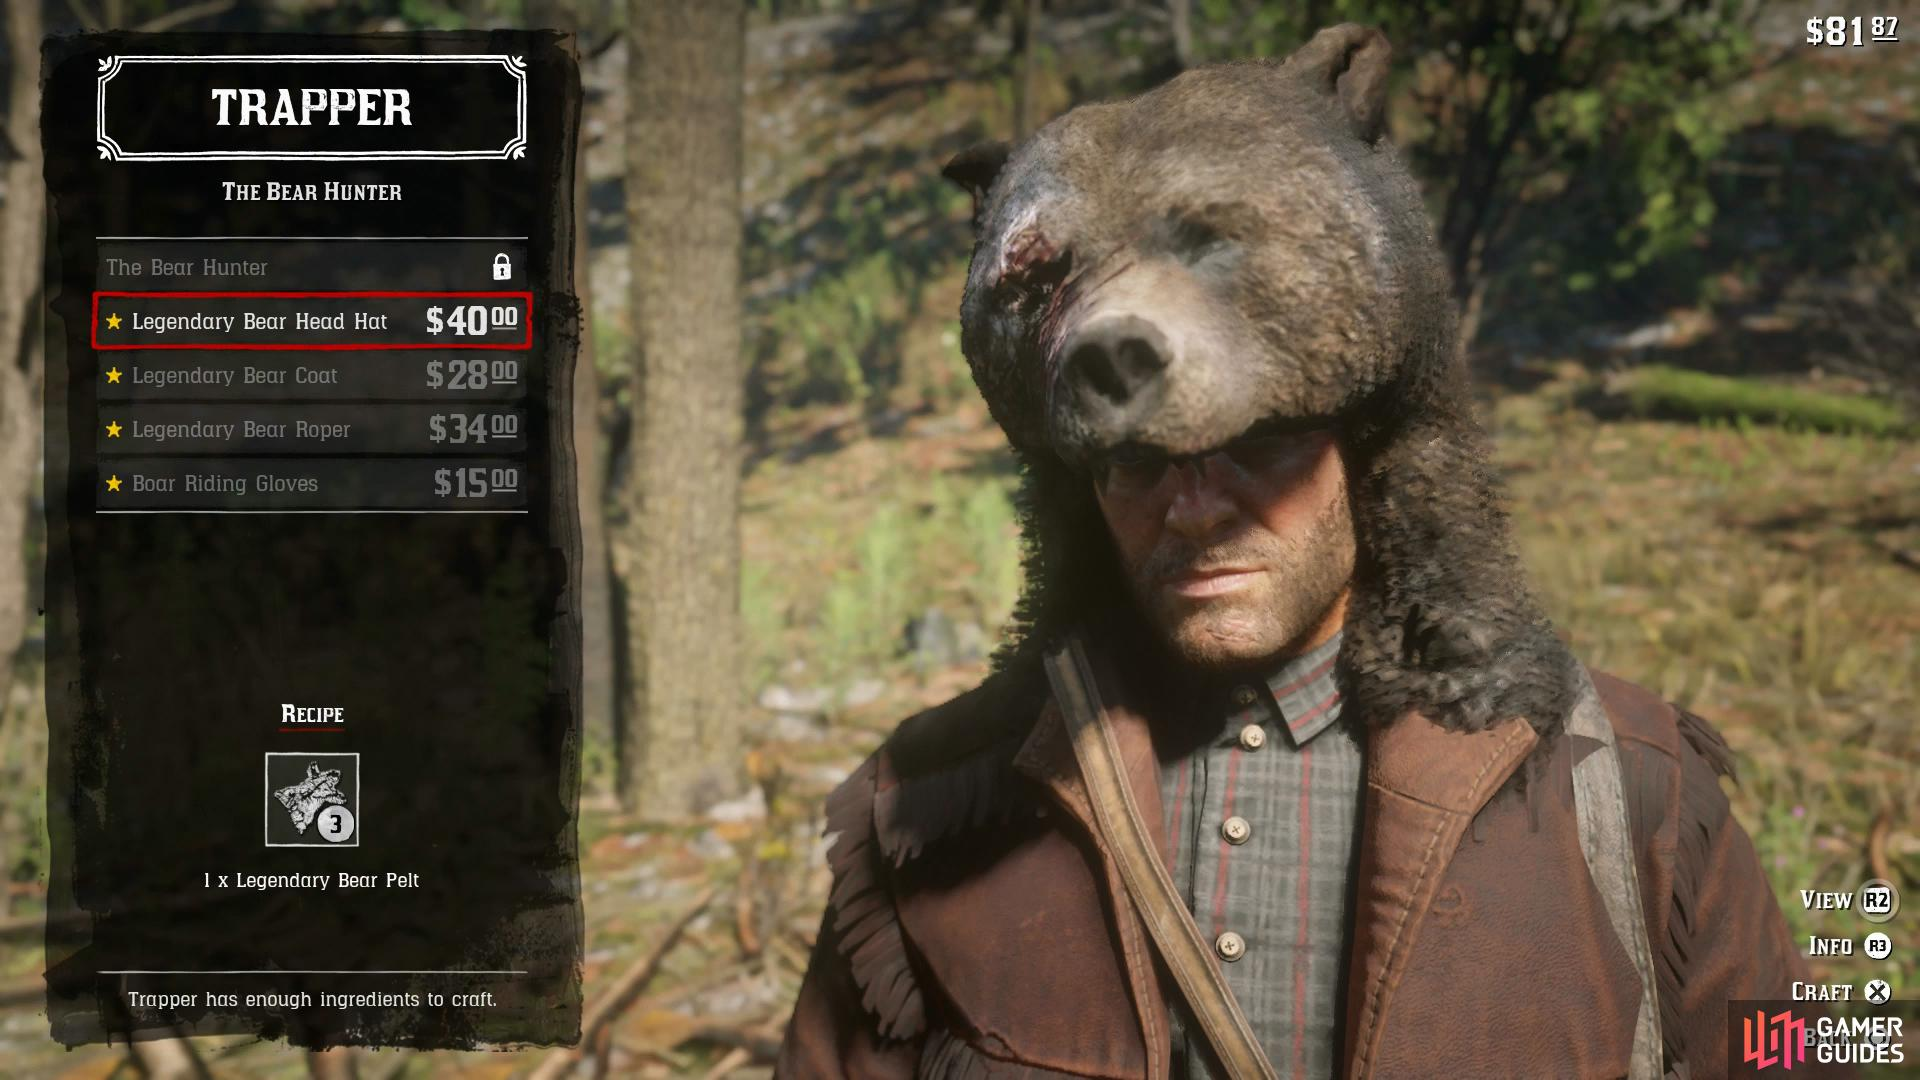 the Trapper will take Legendary pelts to craft unique outfits.